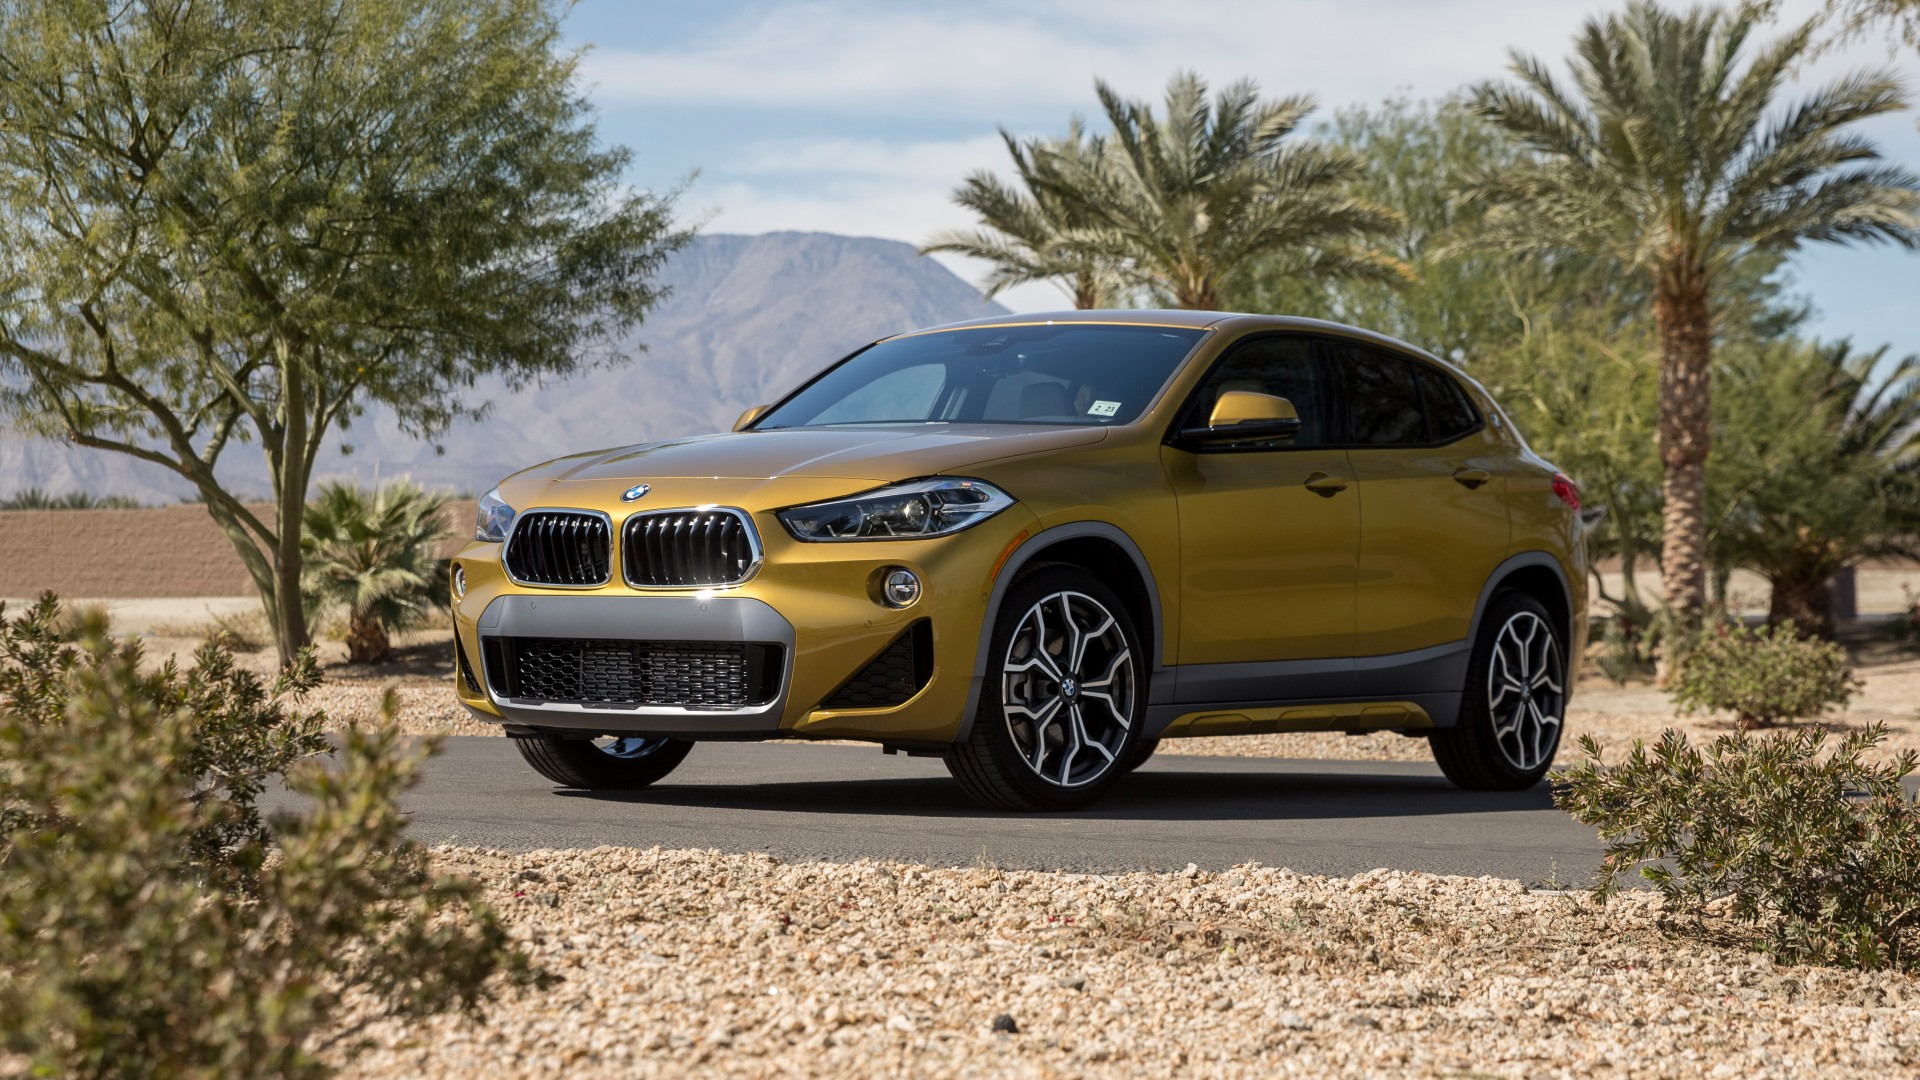 2019 bmw x2 xdrive28i m sport x 4k 2 wallpaper hd car wallpapers id 9910. Black Bedroom Furniture Sets. Home Design Ideas